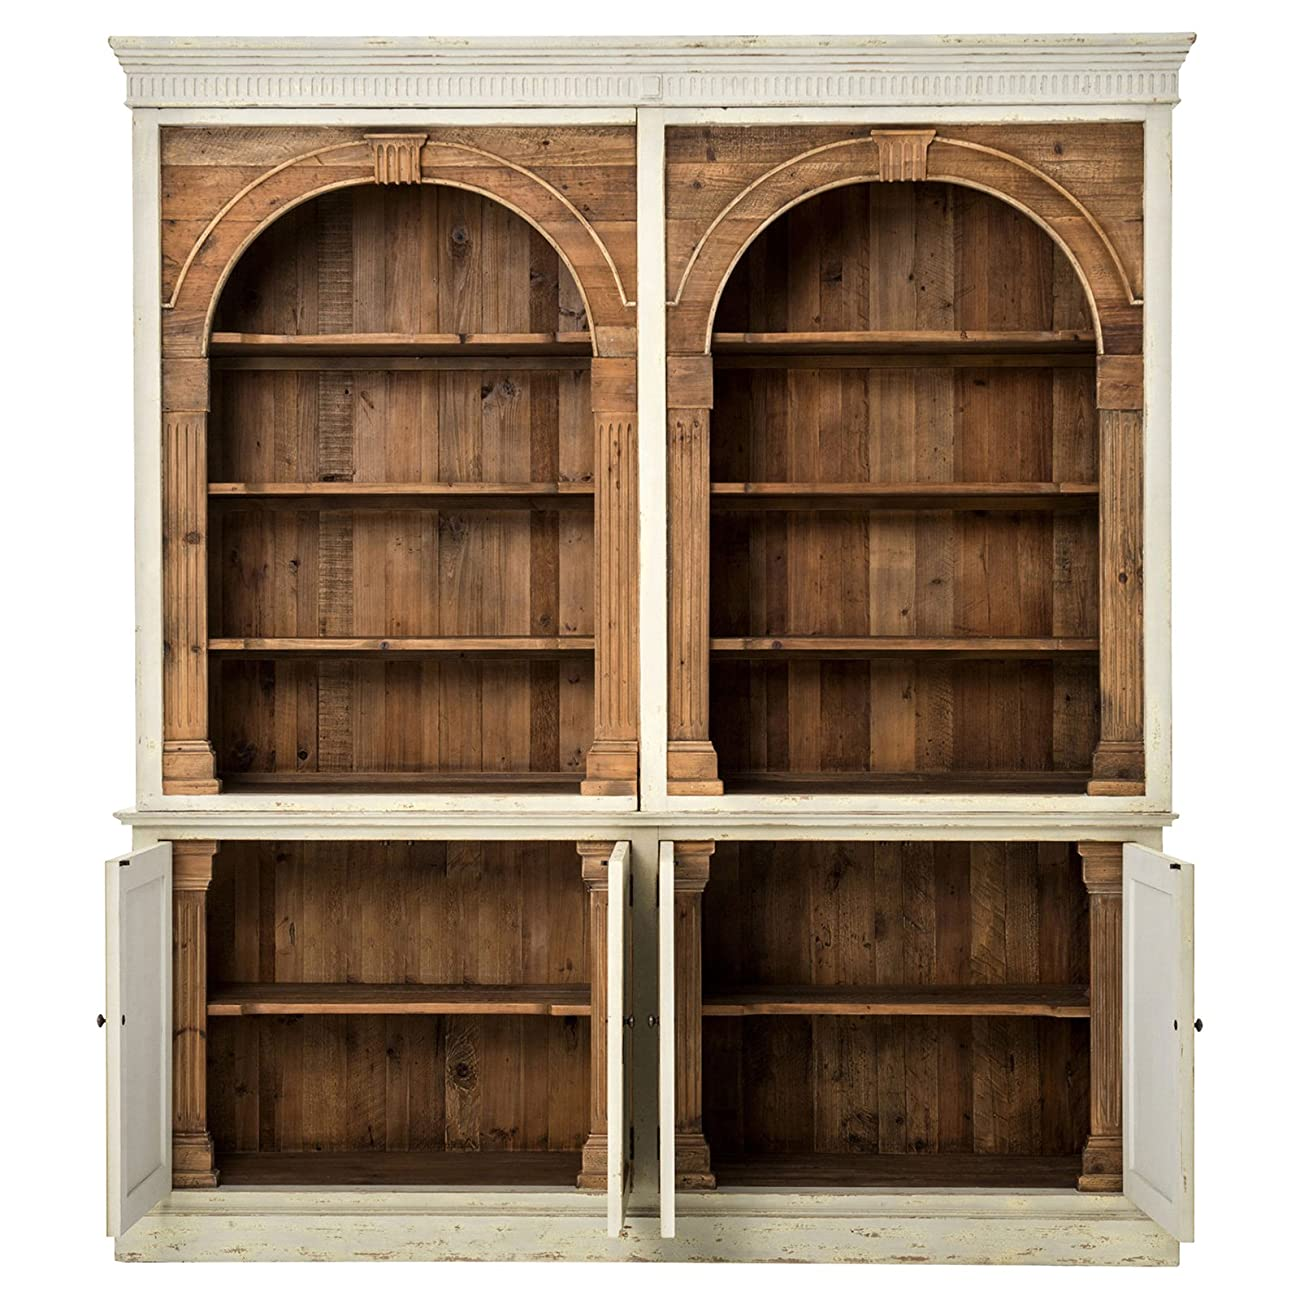 Laurine French Country Rustic Ivory Arch Wood Cabinet 1